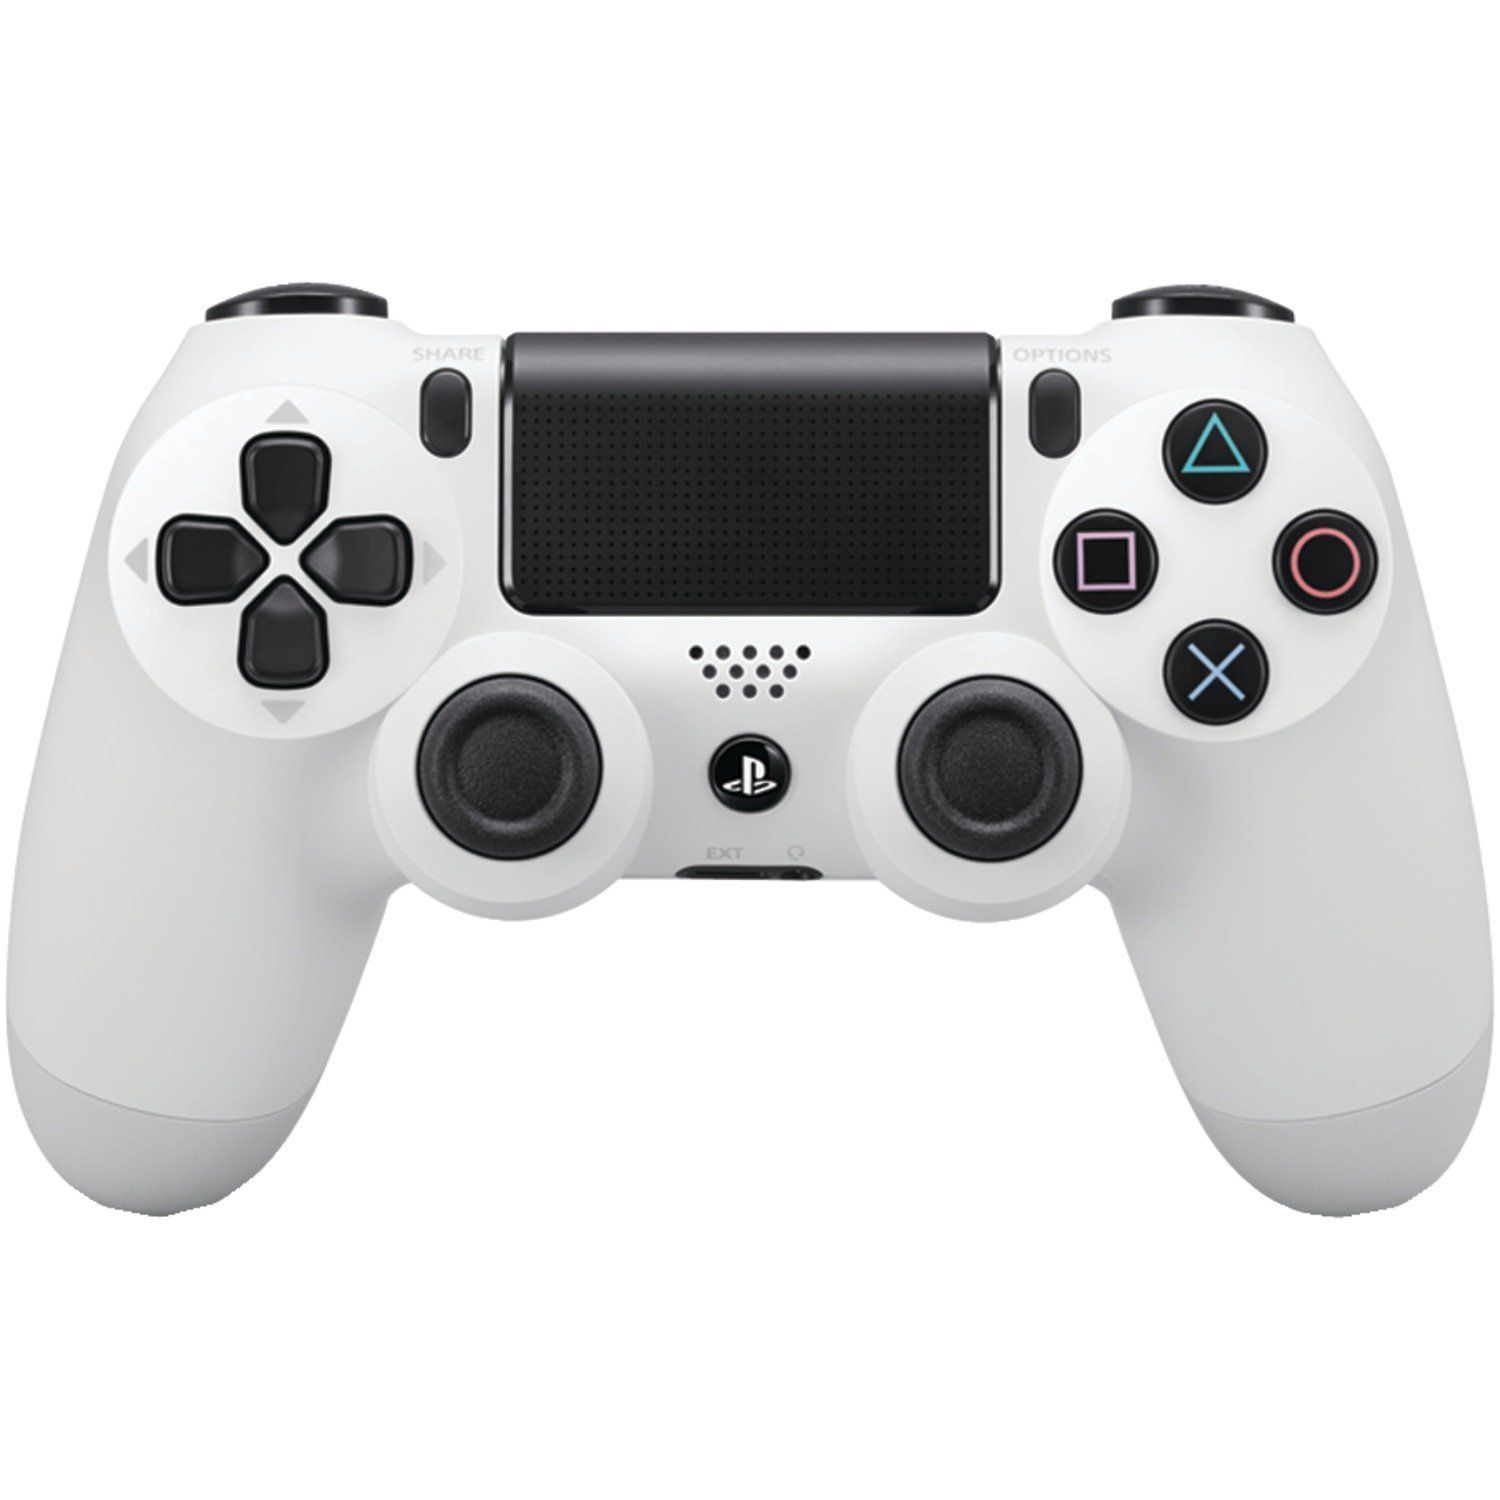 White DualShock 4 Wireless Controller is on sale at the moment for ...